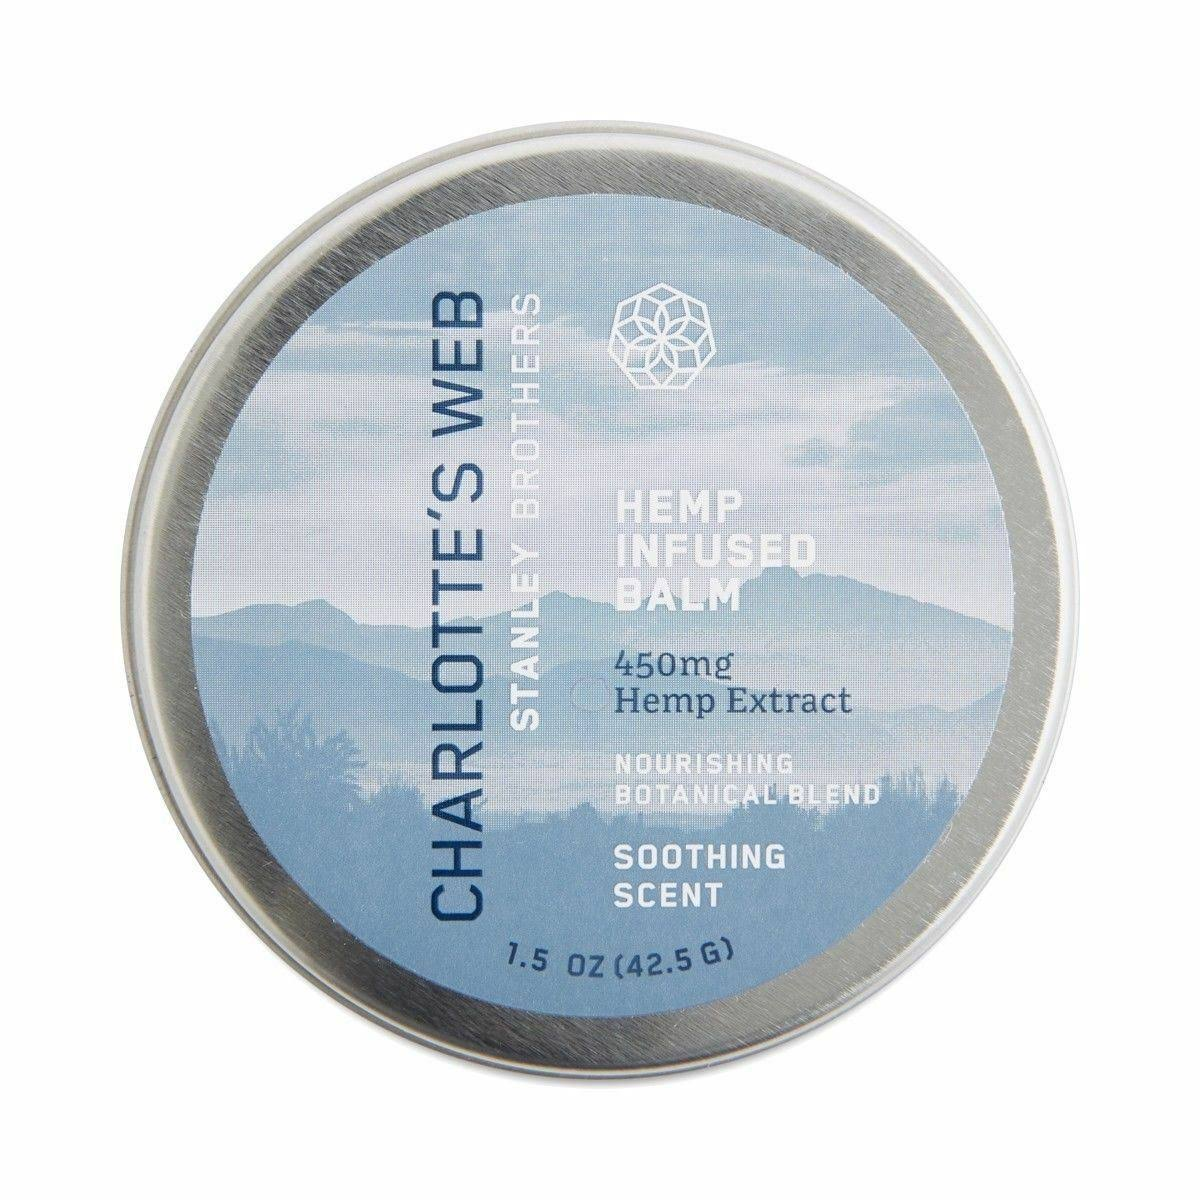 Charlotte's Web Hemp Infused Balm - Soothing Scent, 1.5oz